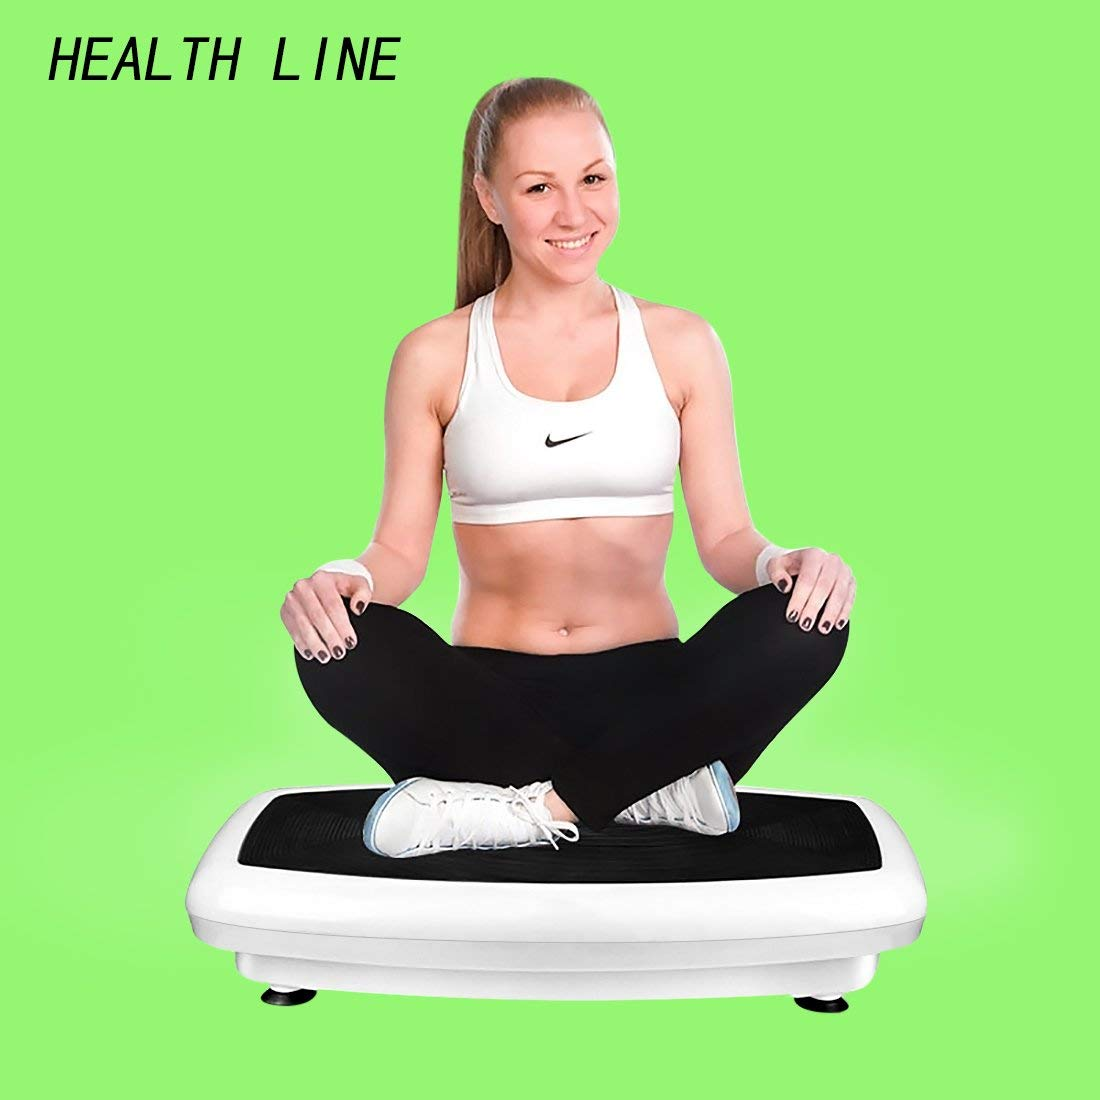 HEALTH LINE MASSAGE PRODUCTS 330LB Vibration Plate Vibration Platform Workout Machine Body Shape Vibration Exercise Machine with Two Bands and Remote